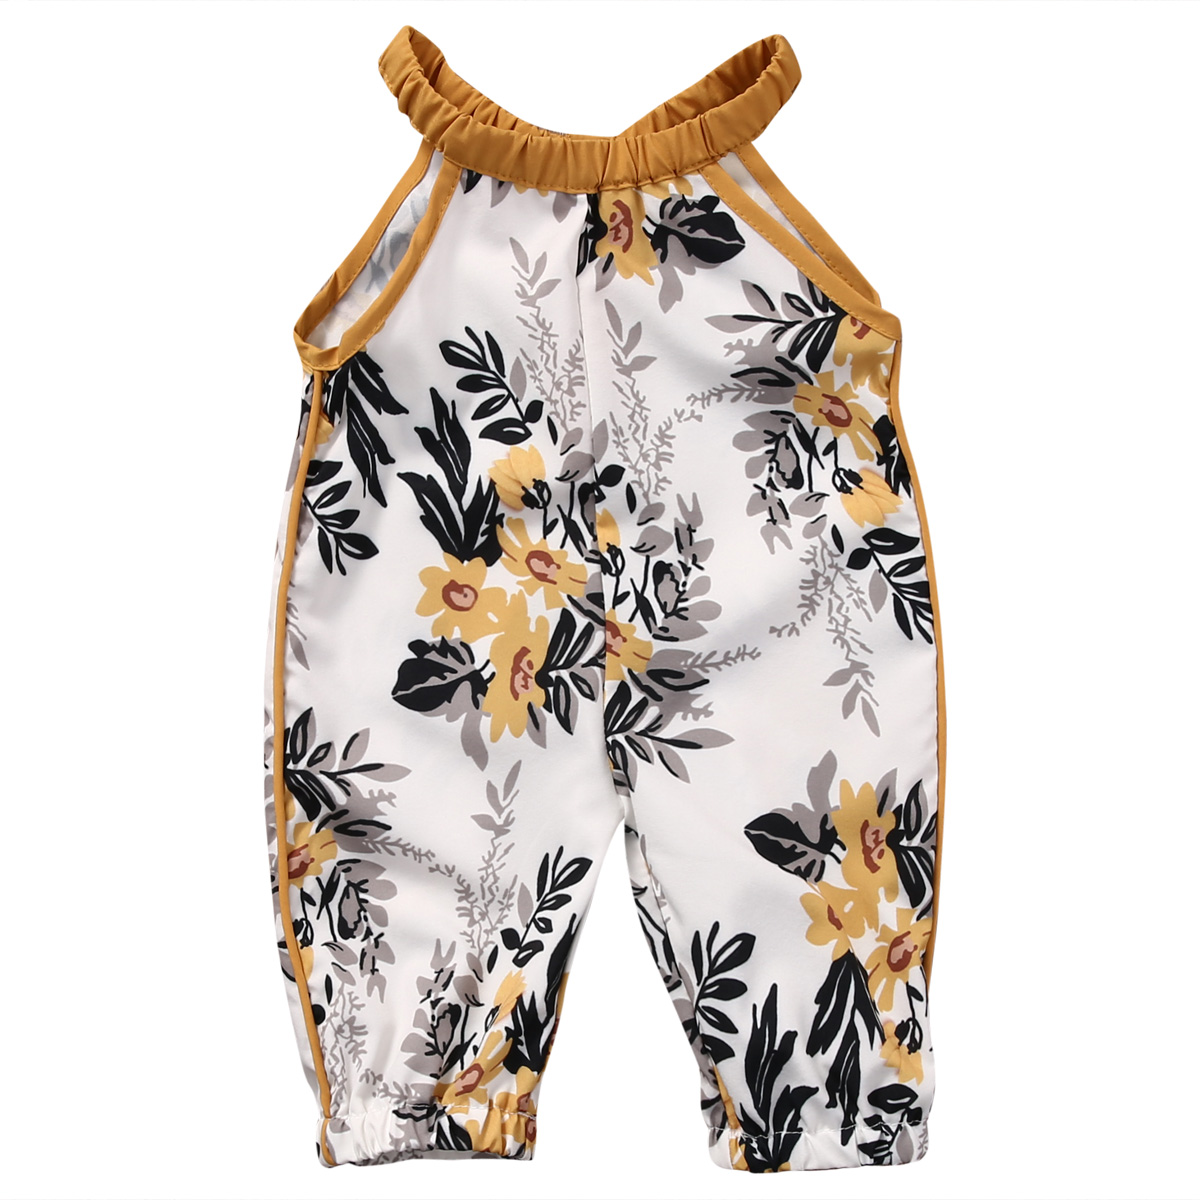 2017 Fashion Baby Girls Clothes Baby Girls Floral Sleeveless Summer Jumpsuit   Romper   Clothes Outfits Set